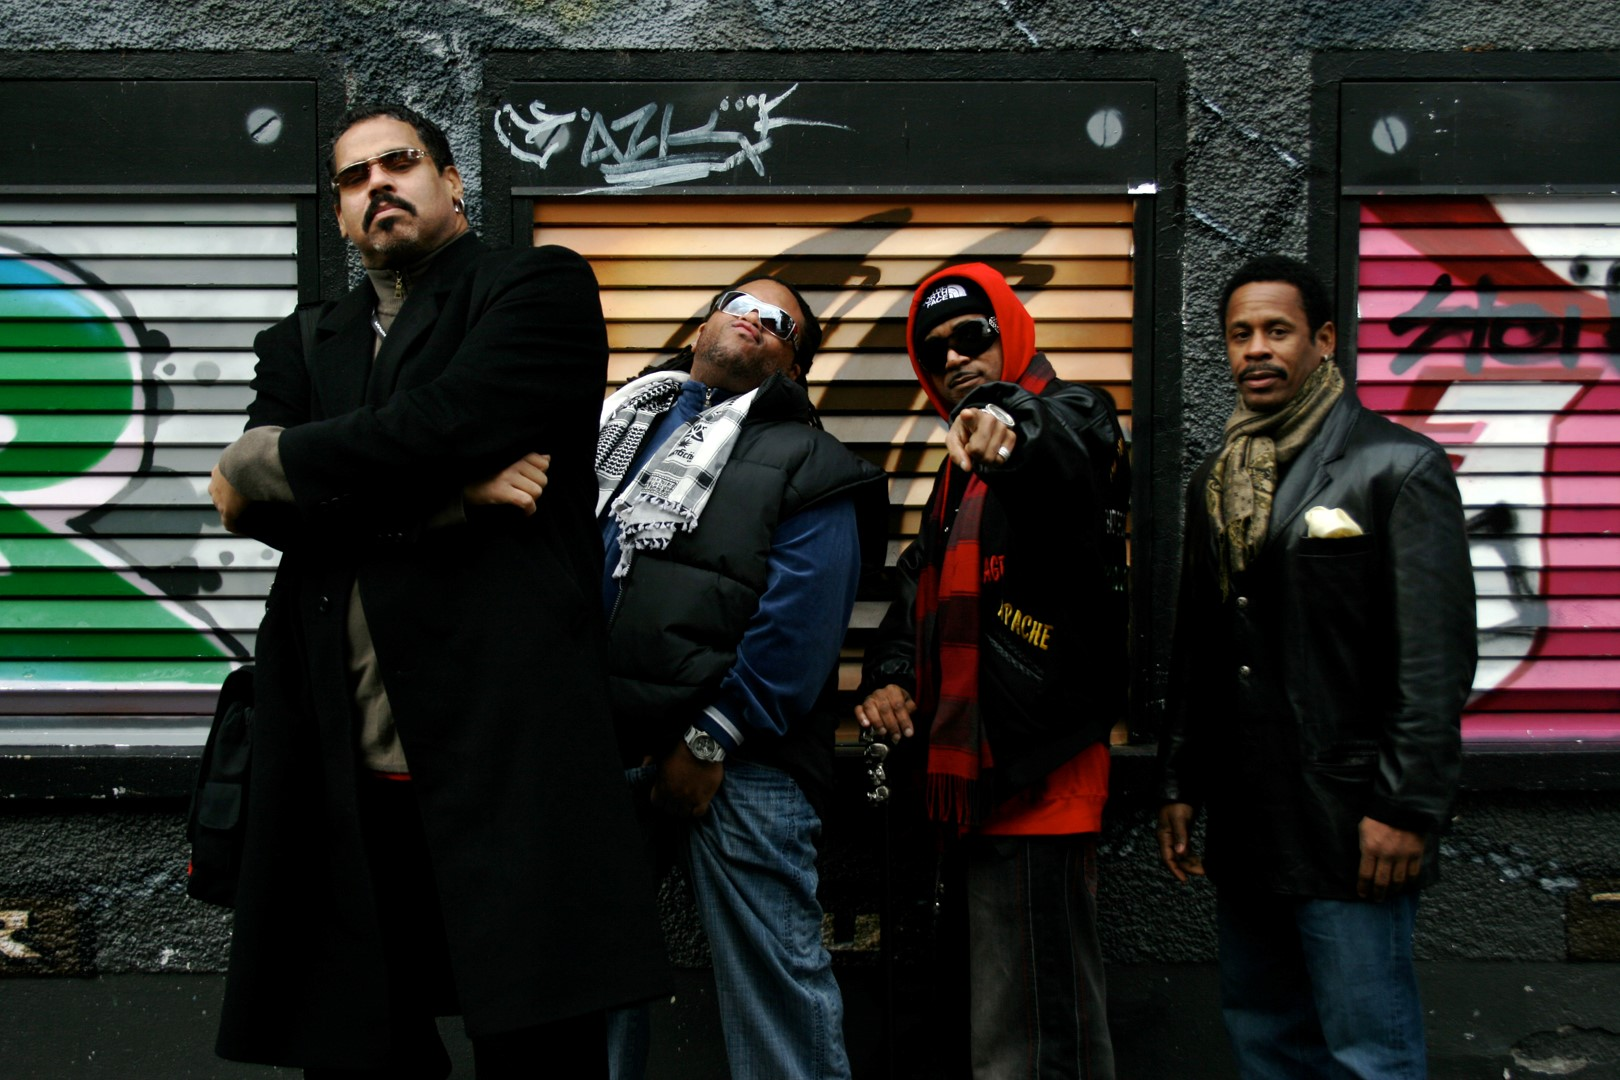 The Sugar Hill Gang heading for Nozstock Festival